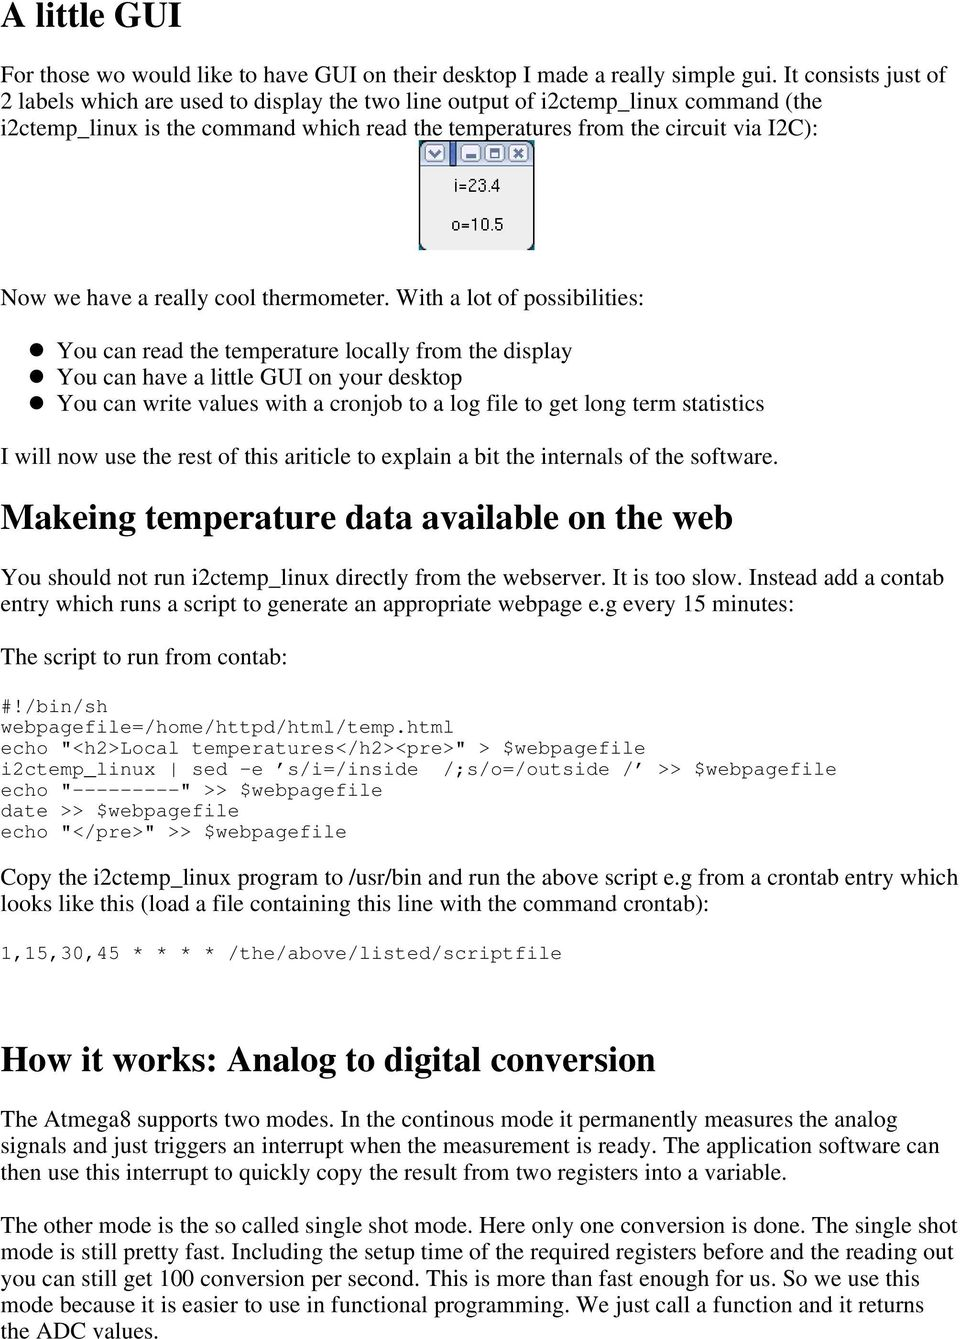 A simple digital thermometer - PDF